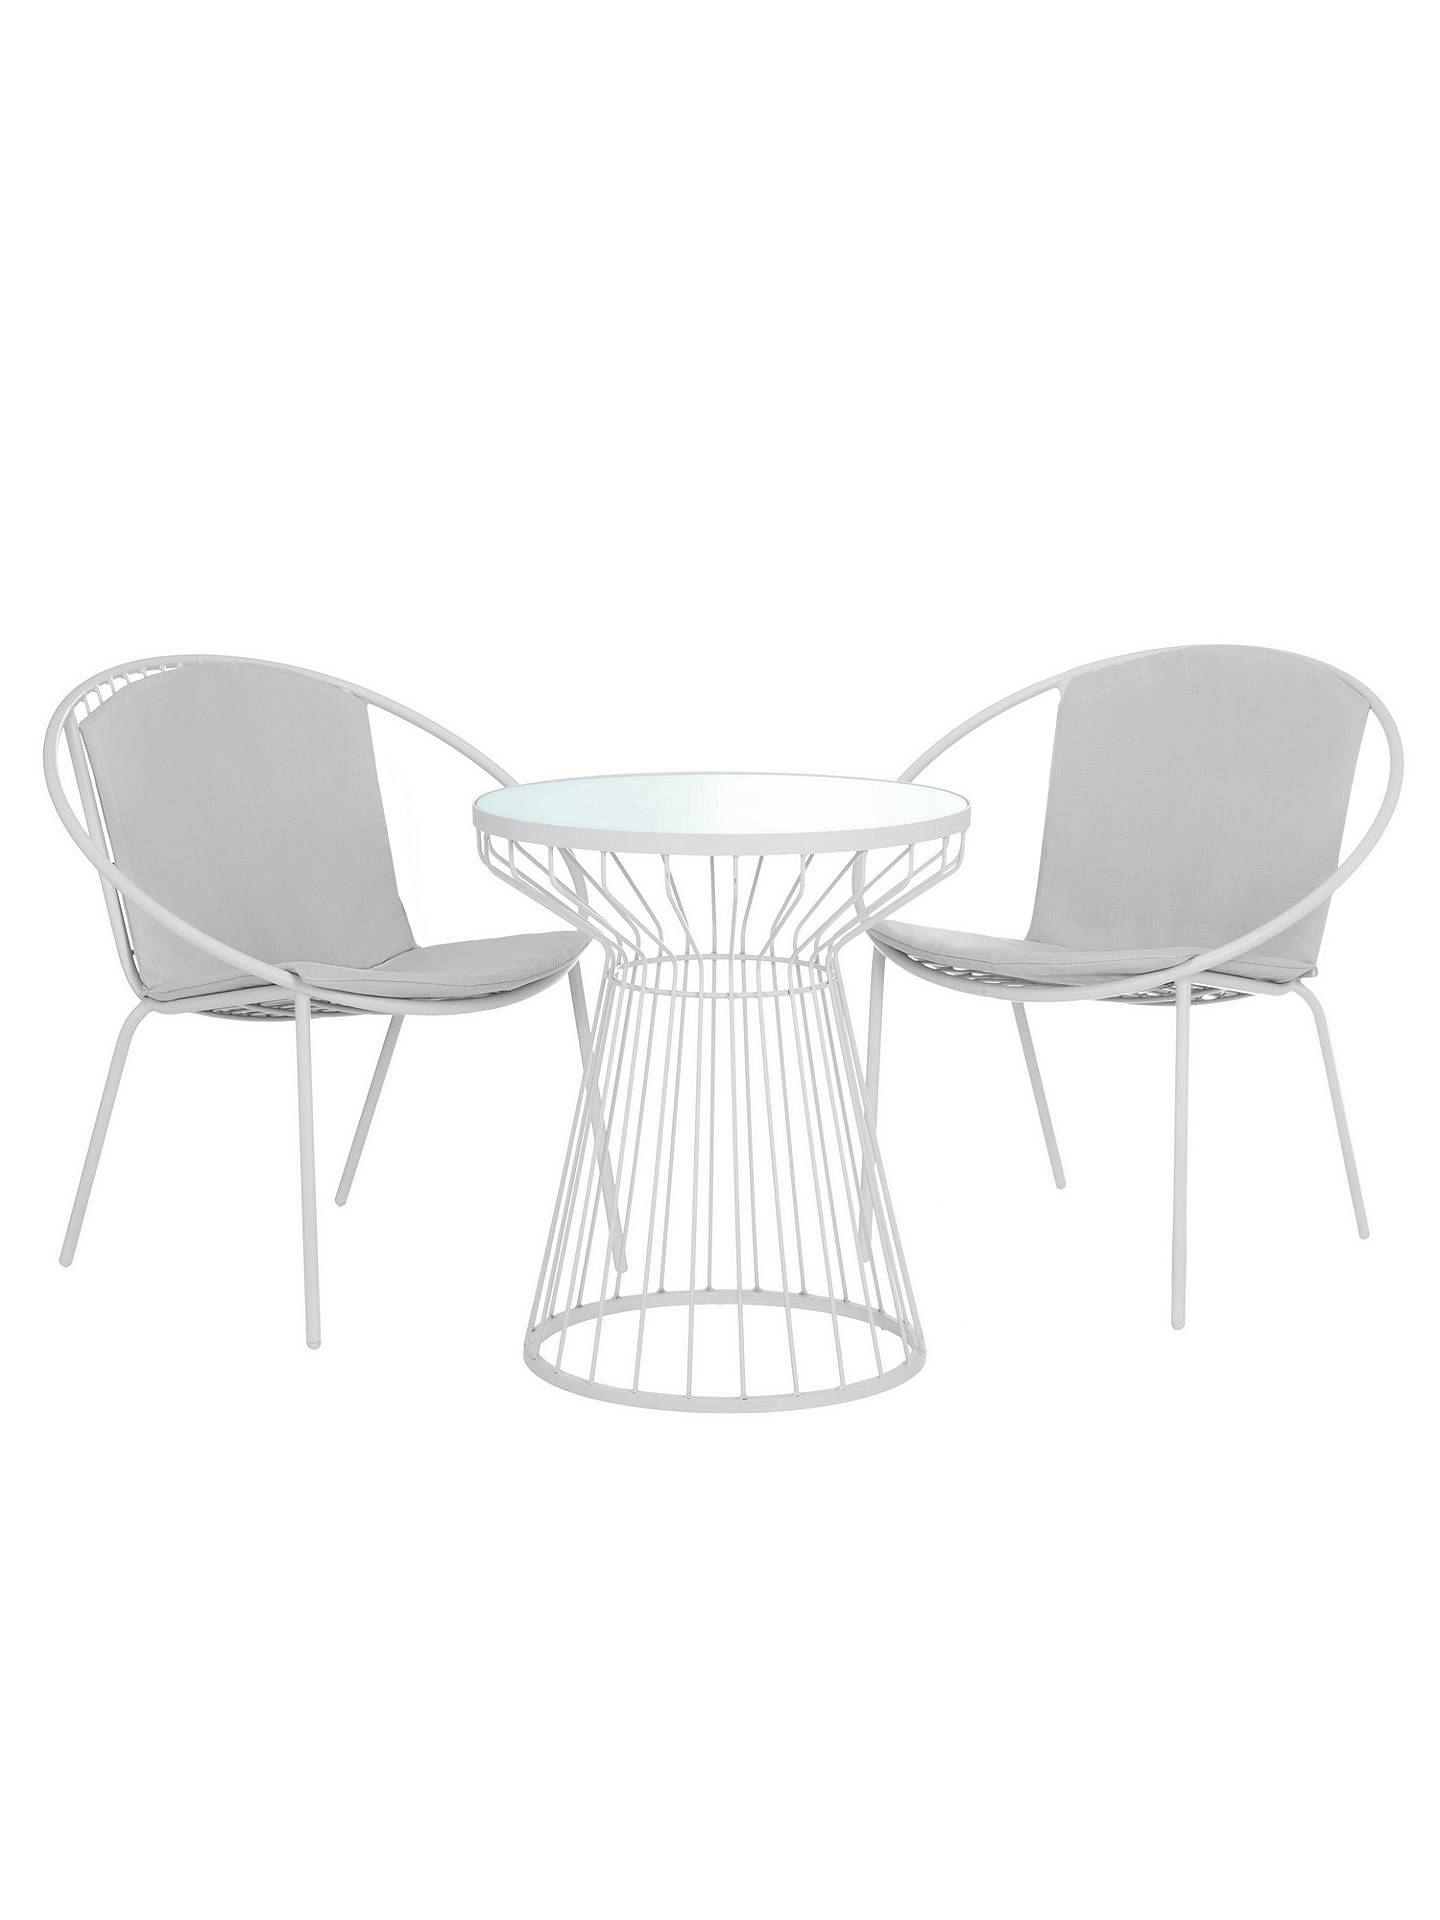 BuyHouse by John Lewis Porto Bistro Garden Table and Chairs Set French Grey Online at ...  sc 1 st  John Lewis & House by John Lewis Porto Bistro Garden Table and Chairs Set at John ...